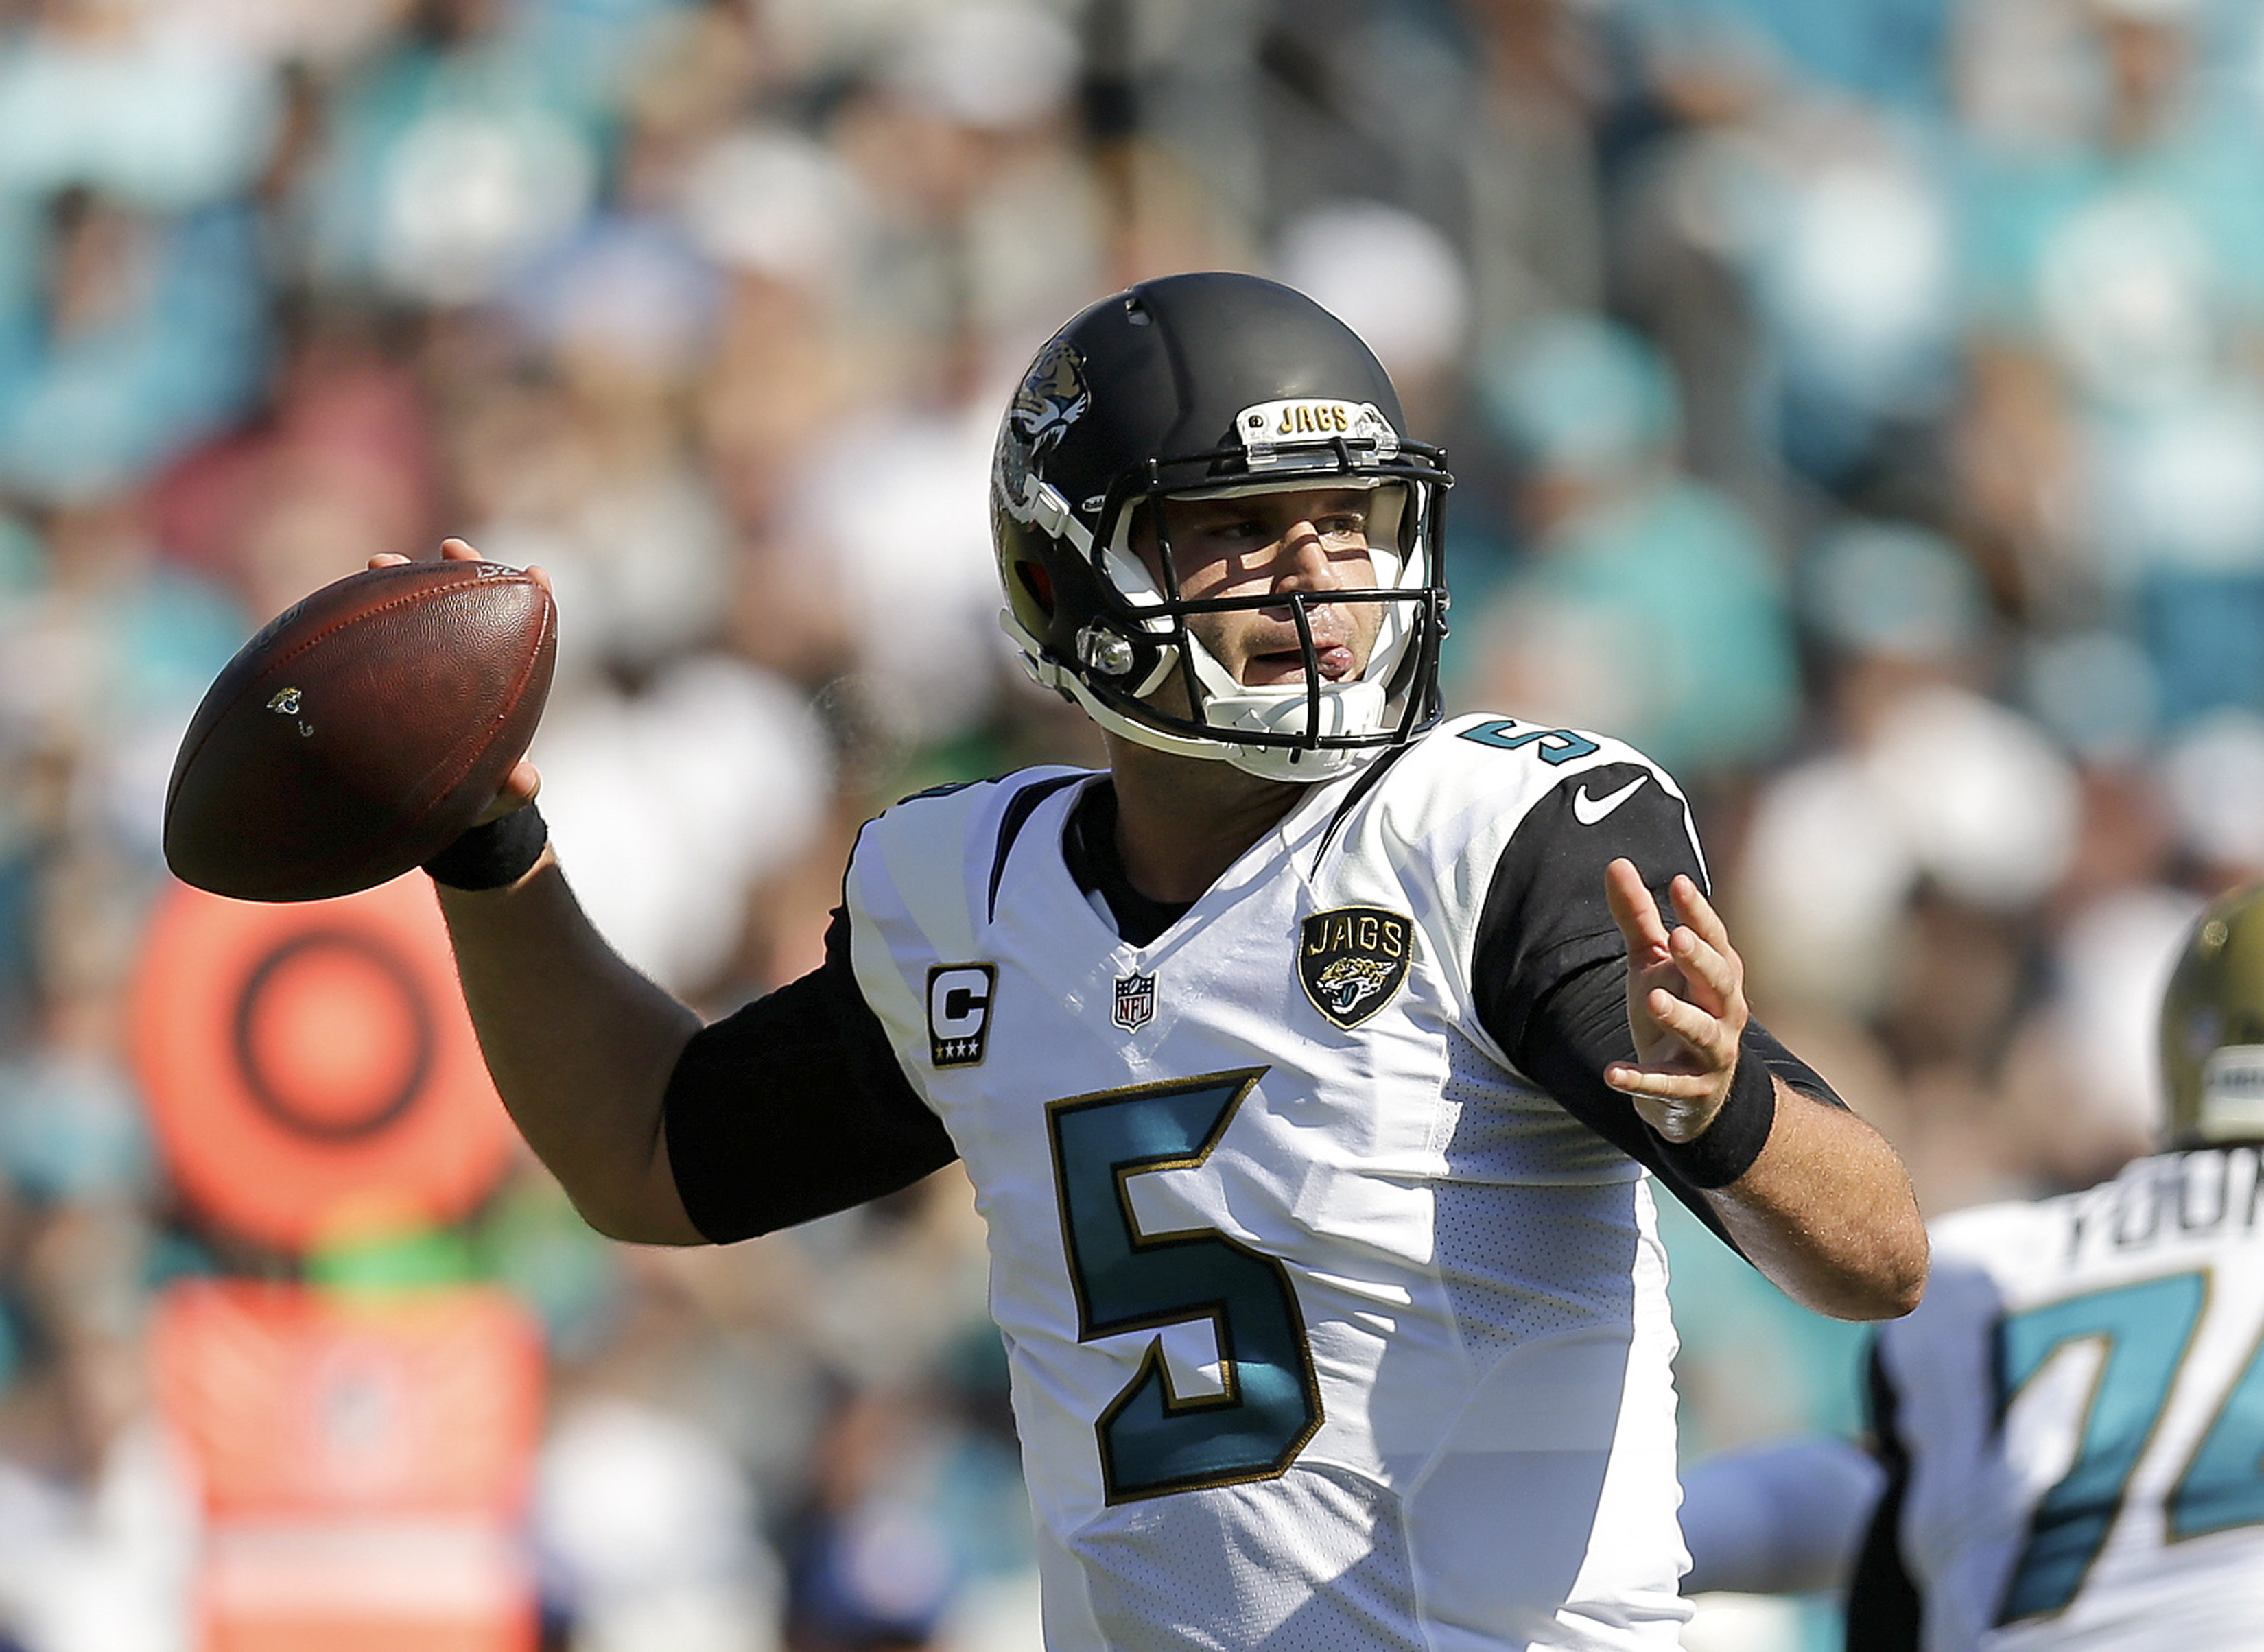 Jacksonville Jaguars quarterback Blake Bortles (5) throws a pass against the Miami Dolphins during the first half of an NFL football game in Jacksonville, Fla., Sunday, Sept. 20, 2015. (AP Photo/Mike Stewart)